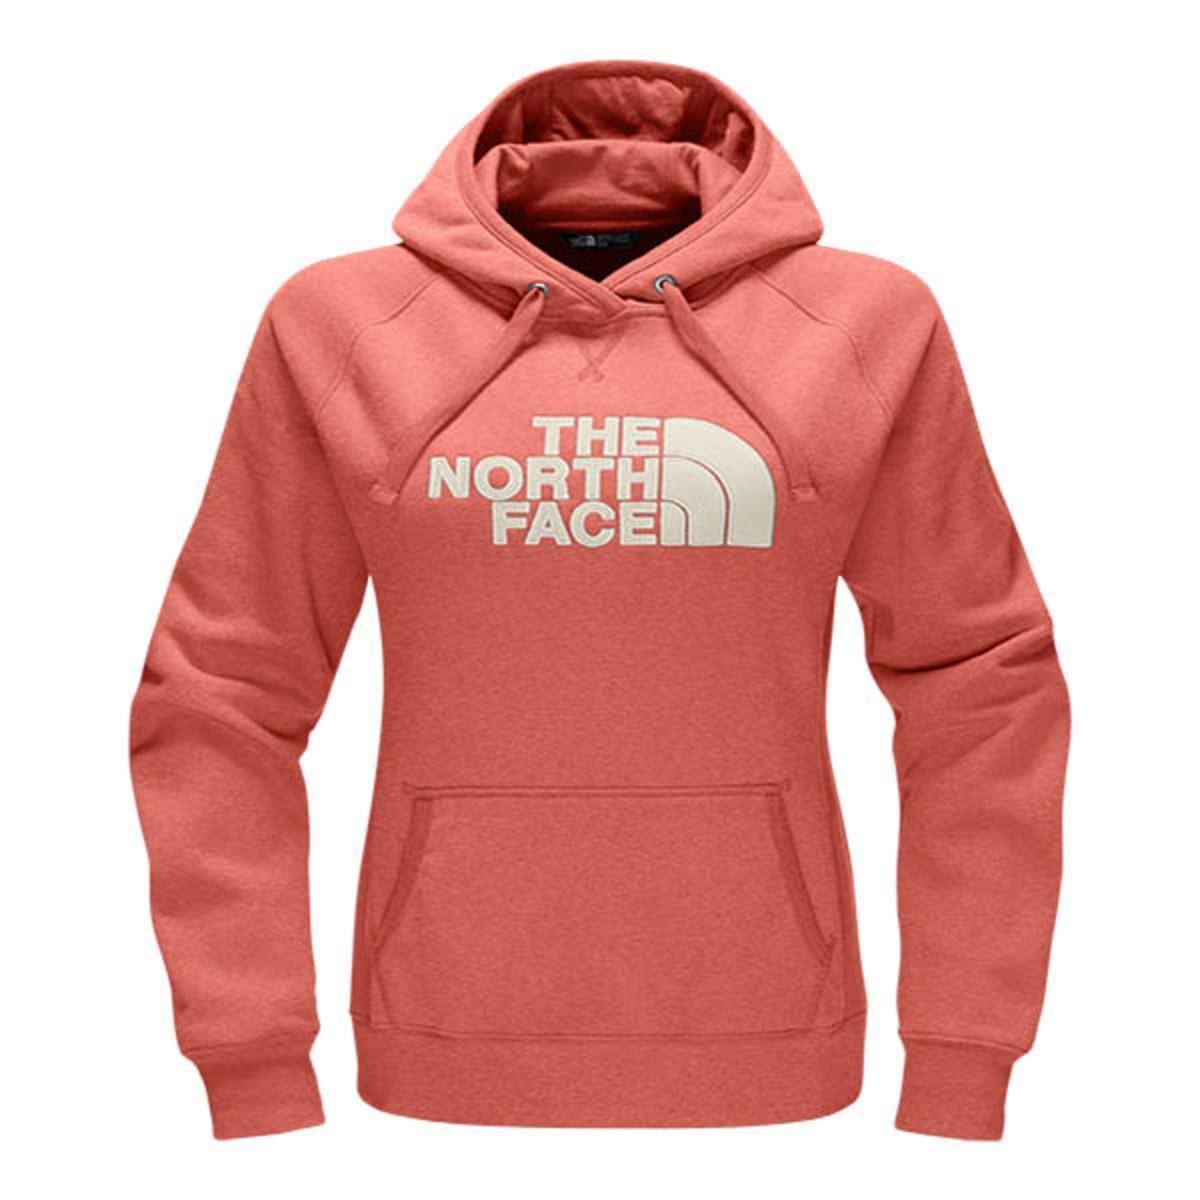 63ae562a8 The North Face Women's Avalon Half Dome Pull-Over Hoodie – Fire ...